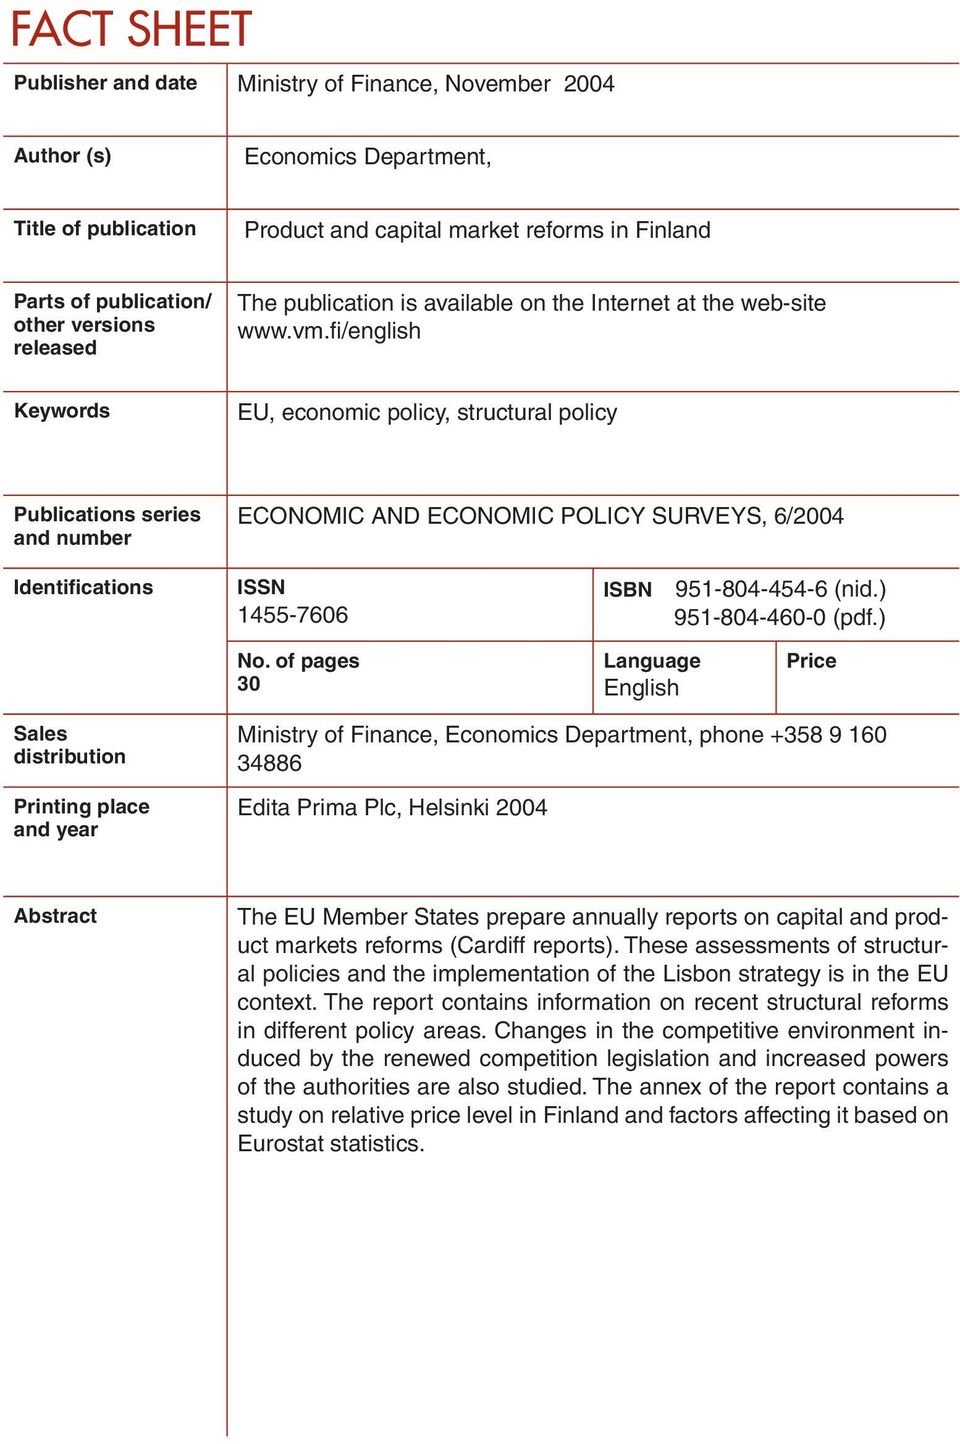 fi /english Keywords EU, economic policy, structural policy Publications series and number ECONOMIC AND ECONOMIC POLICY SURVEYS, 6/2004 Identifications ISSN 1455-7606 ISBN 951-804-454-6 (nid.